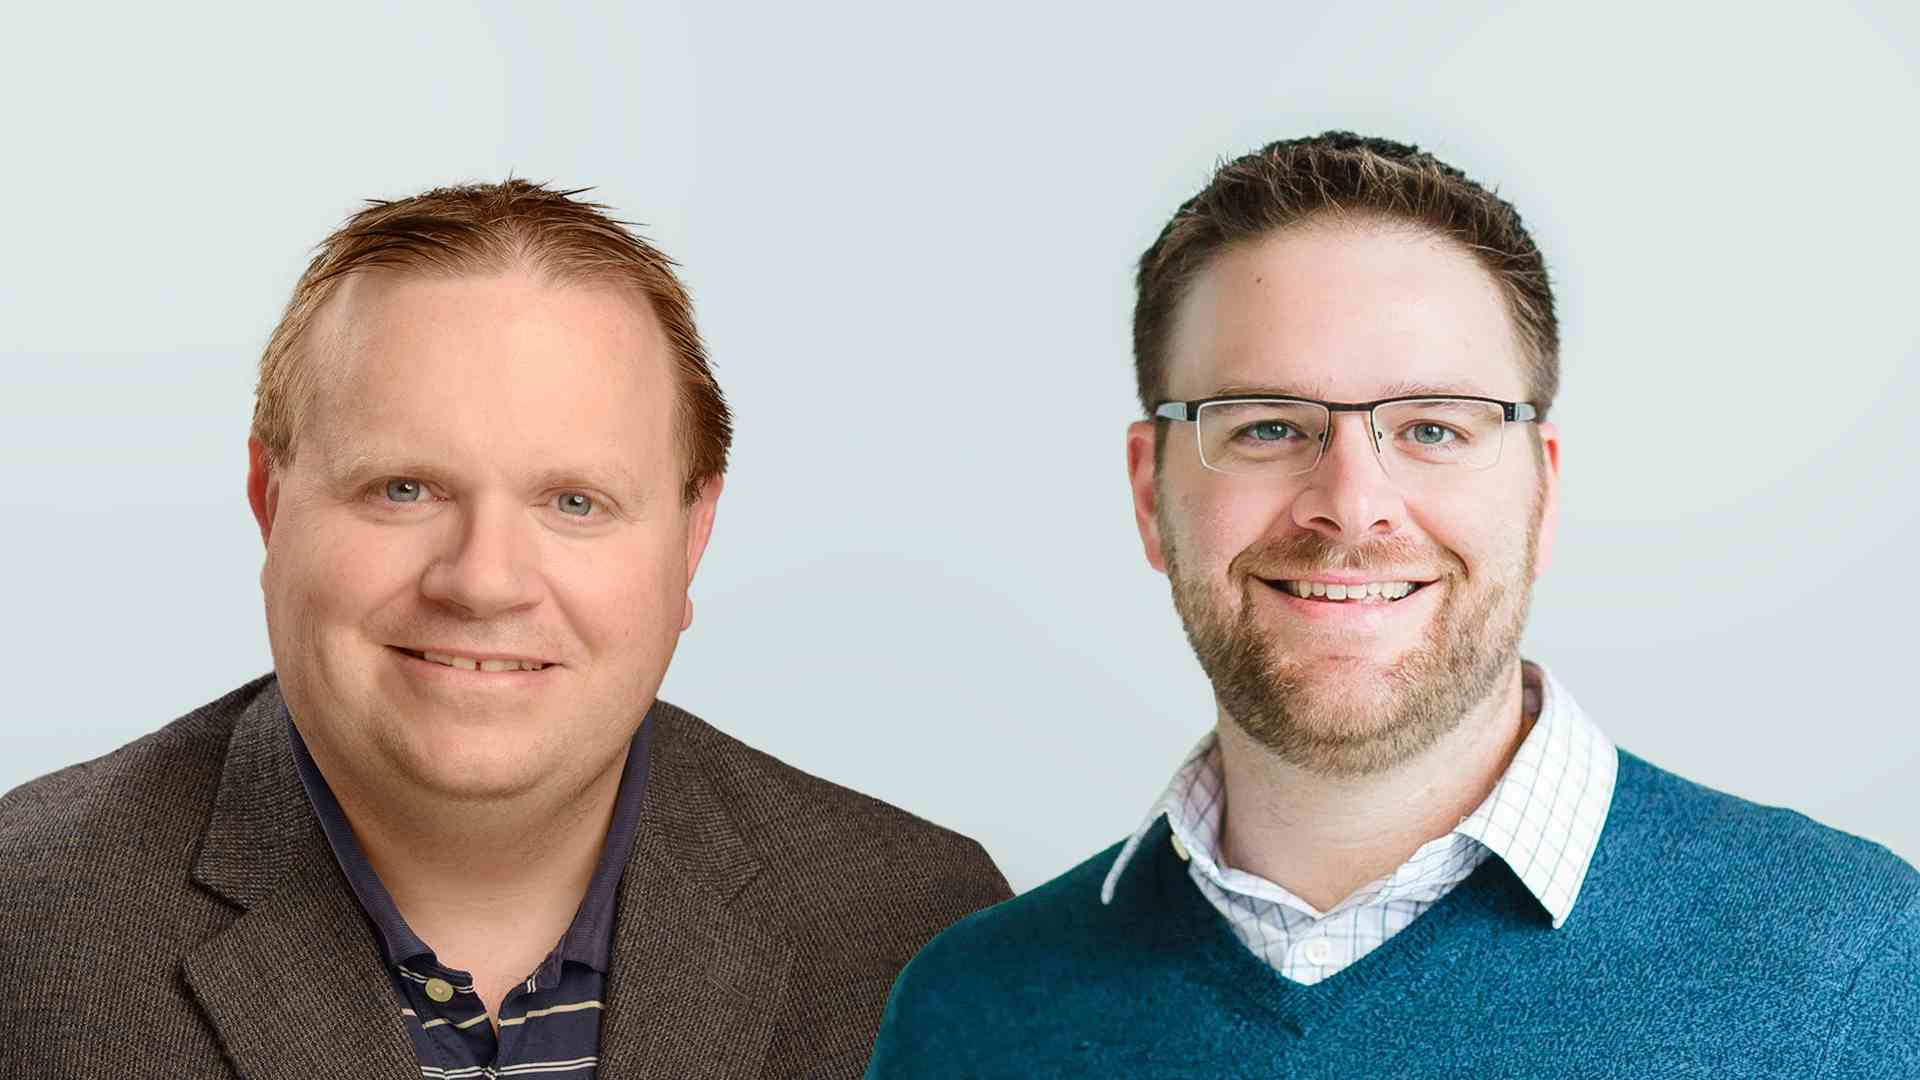 Interview with Dave Mathias and Matt Jesser, Founders of Beyond the Data